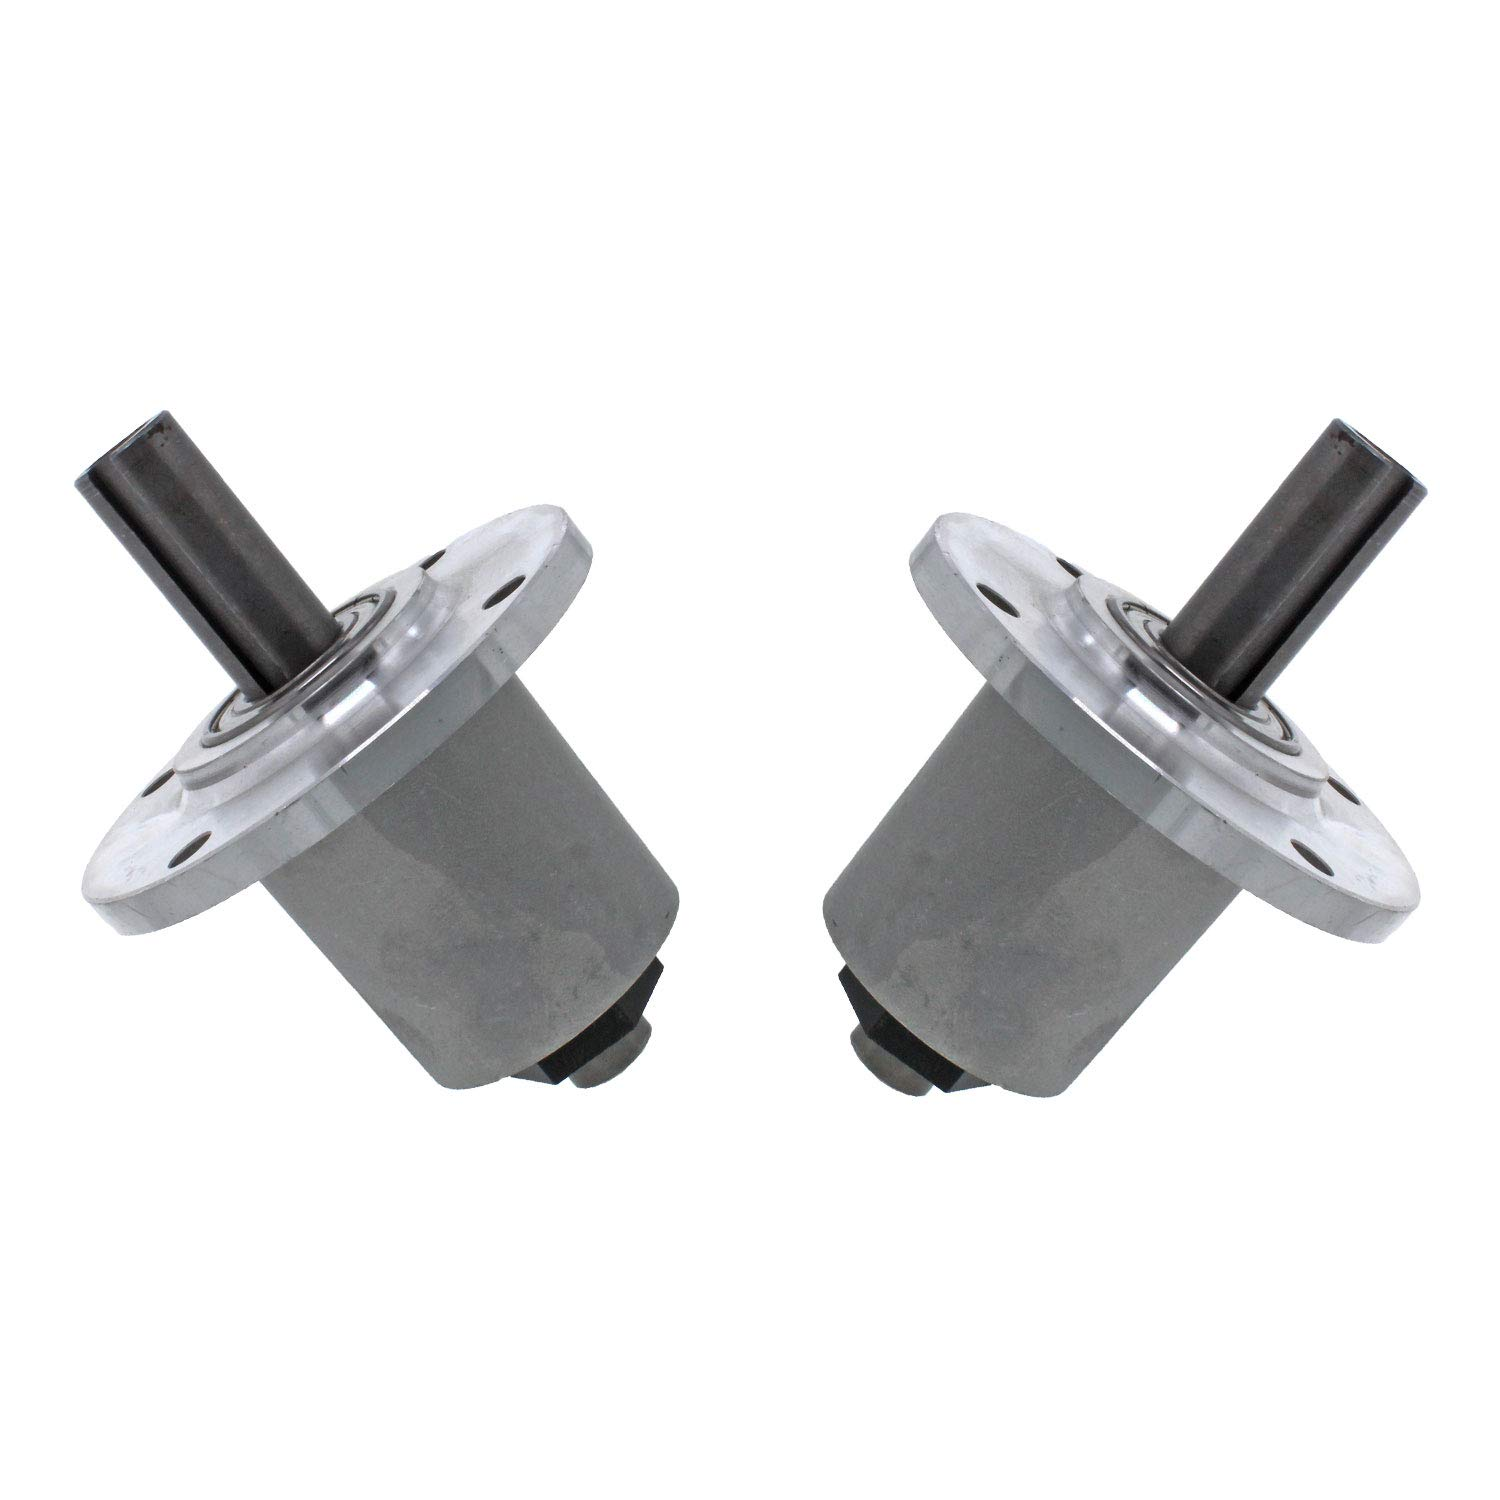 Amazon com : NICHE 2 Pack of Spindle Assemblies for Bobcat